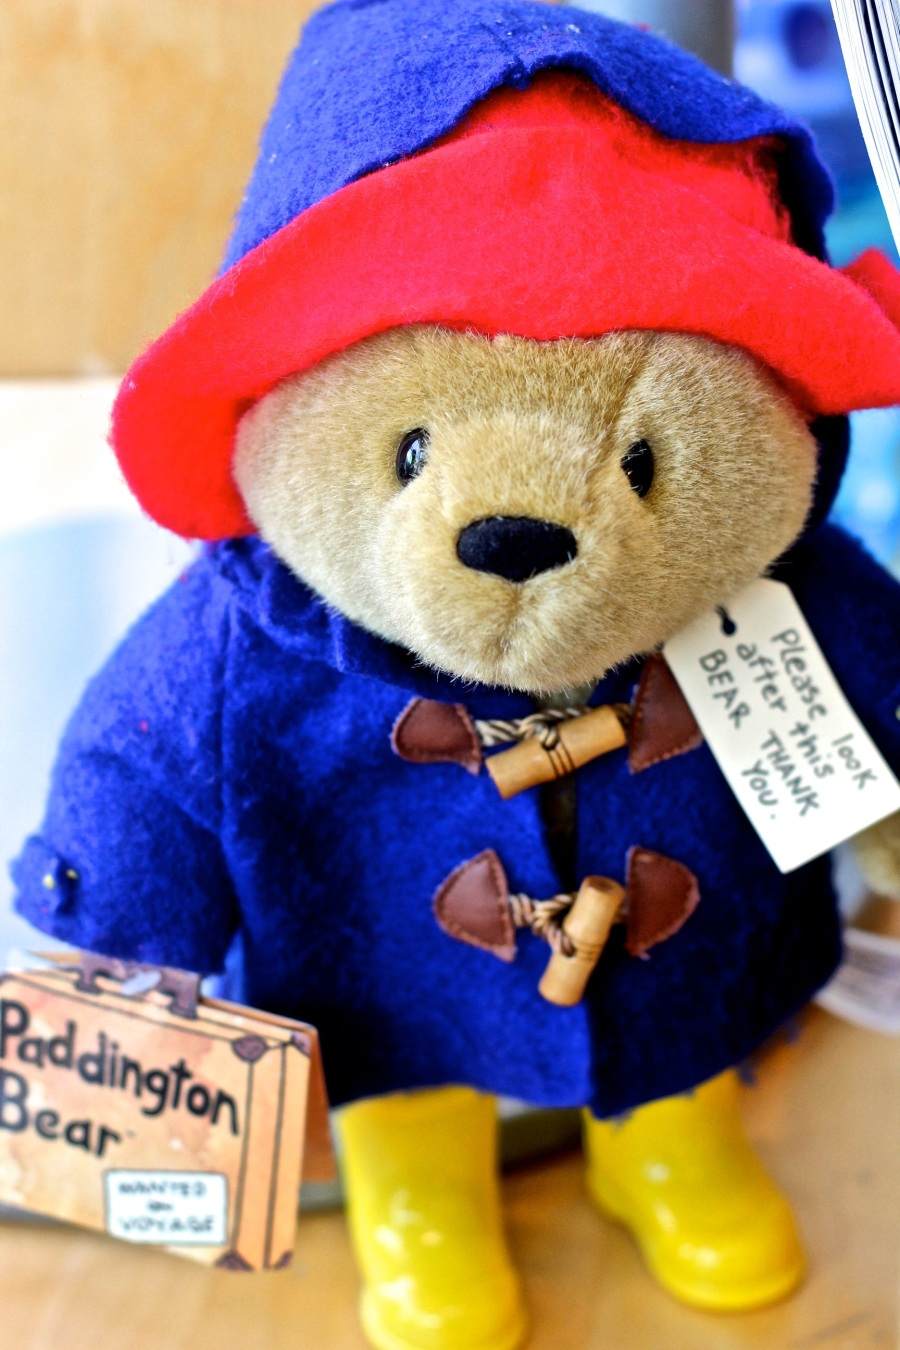 boston childrens museum paddington bear